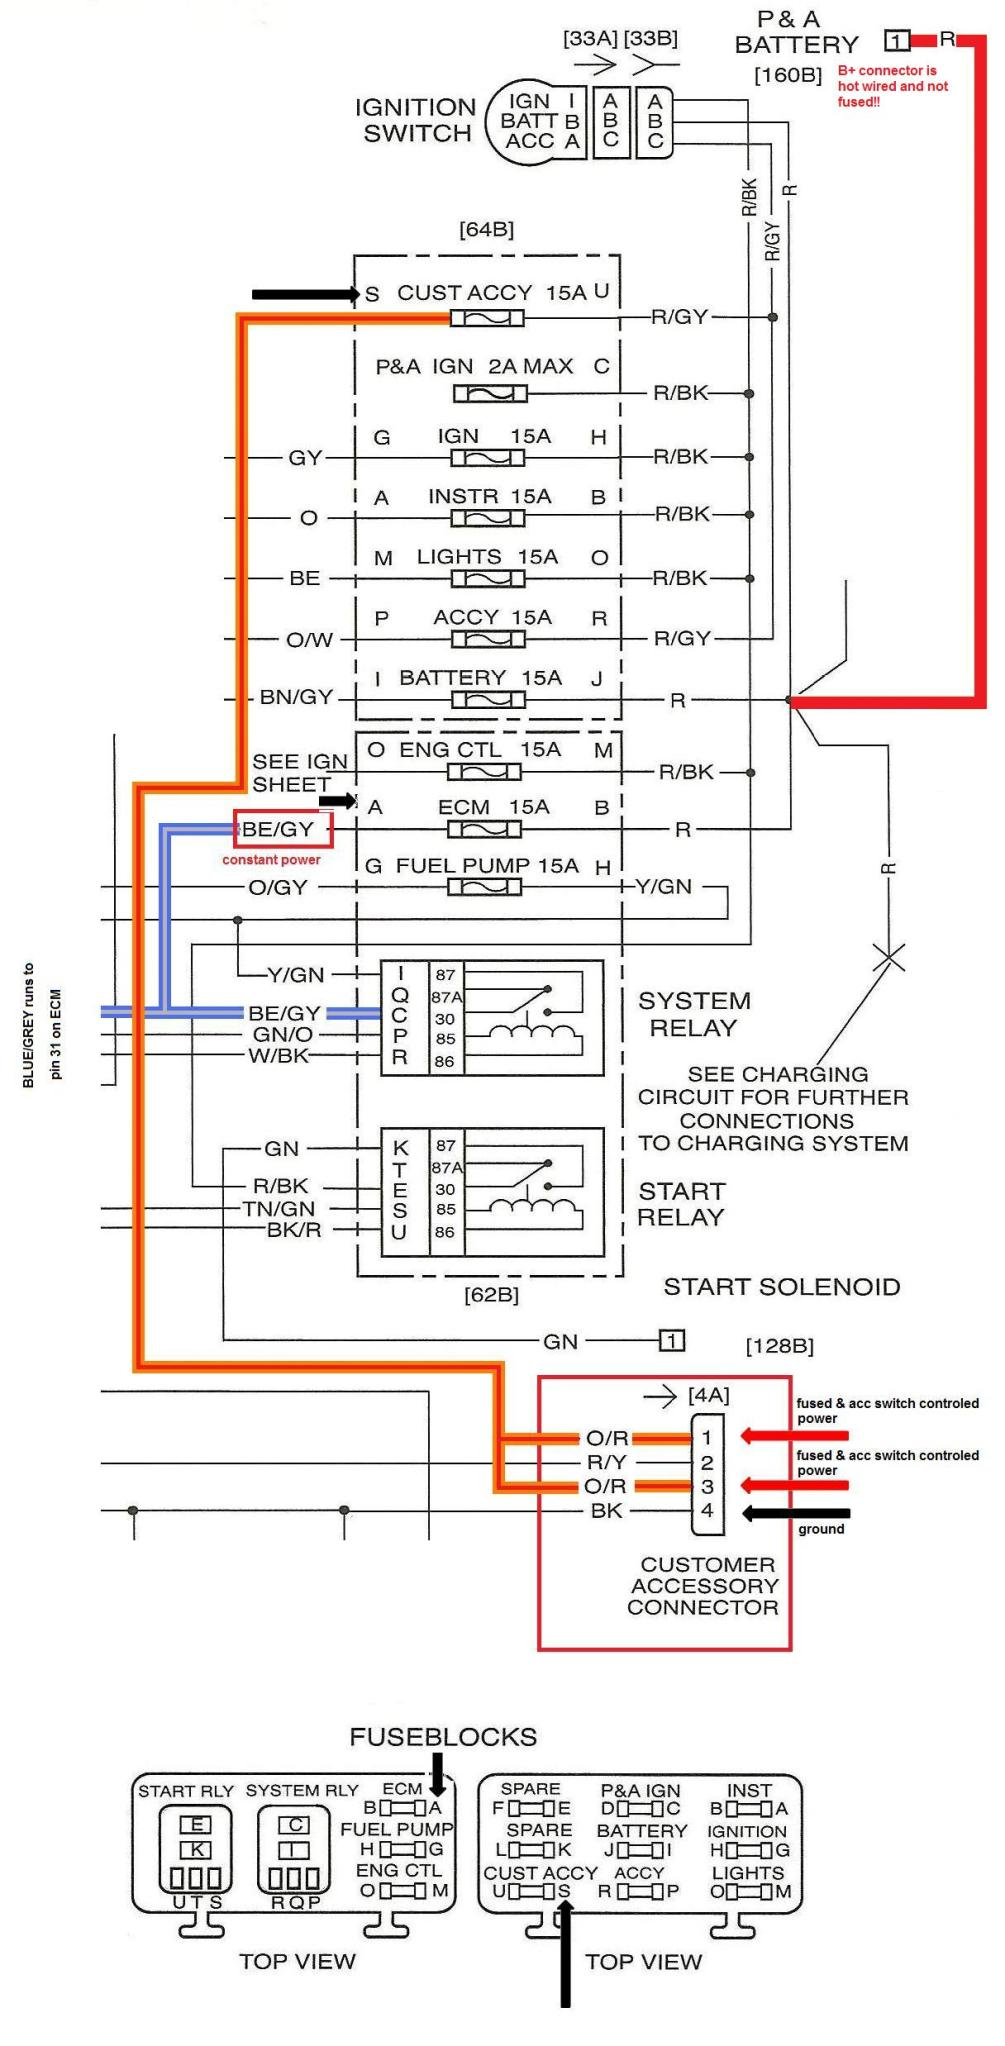 Dyna Wiring Diagram harley tail light wire colors free ... on